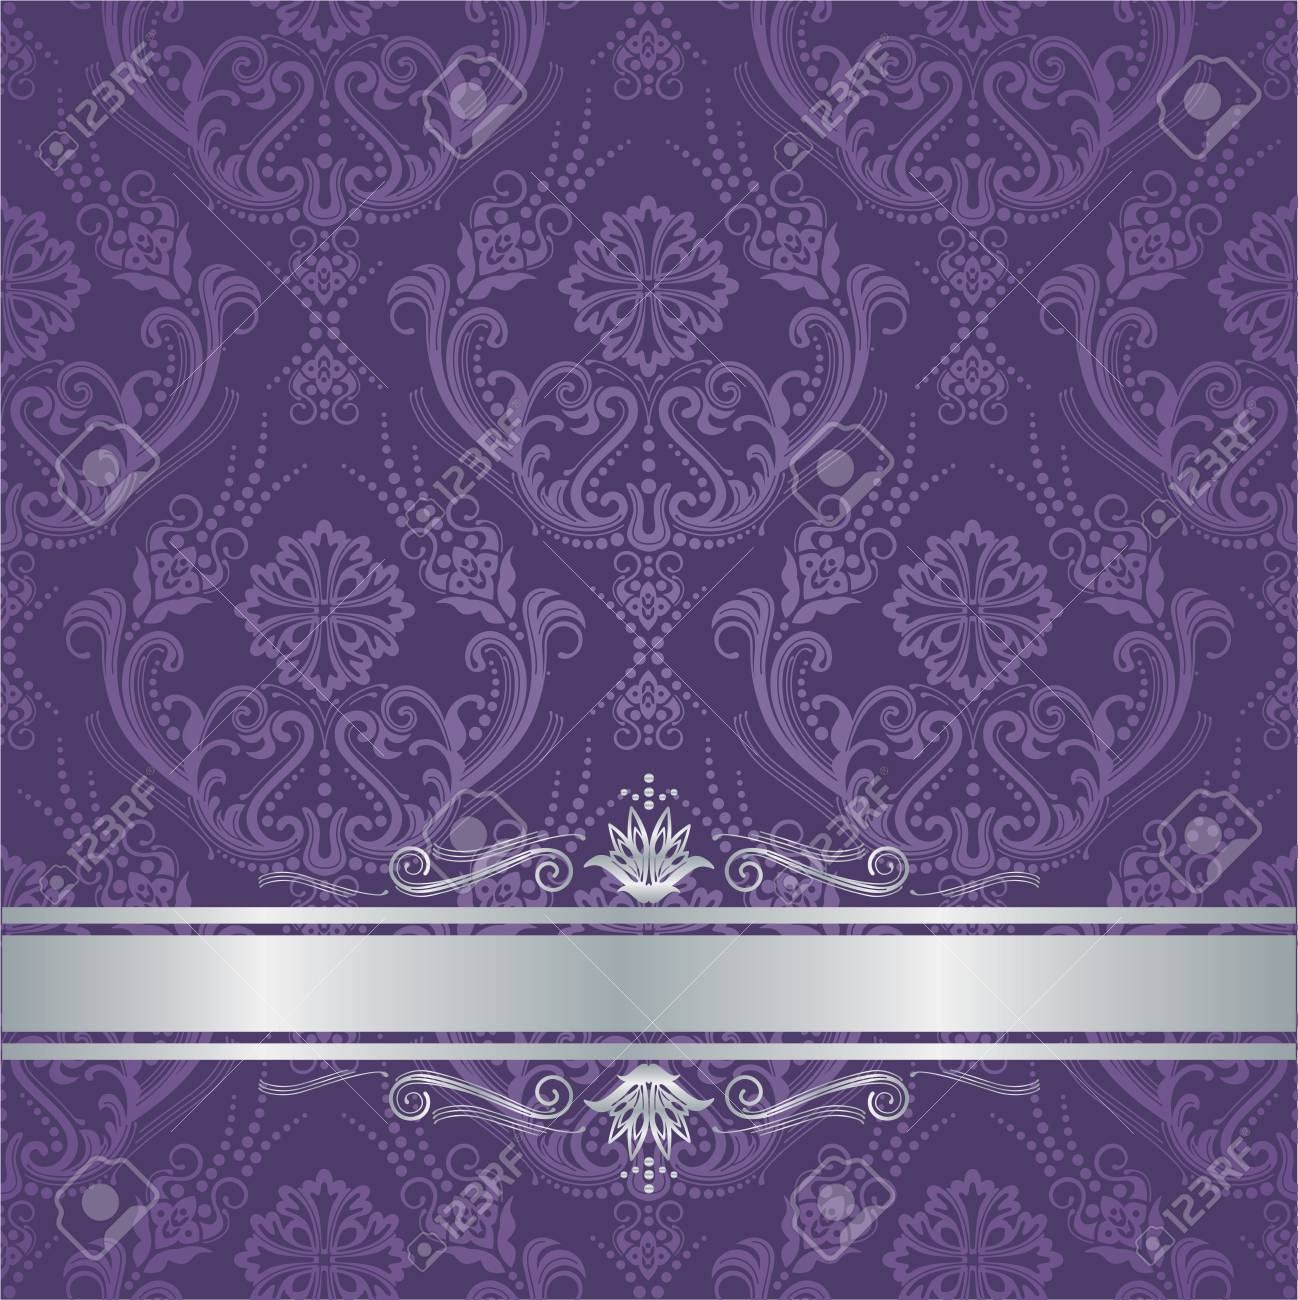 Luxury Purple Victorian Style Floral Damask Wallpaper Cover With